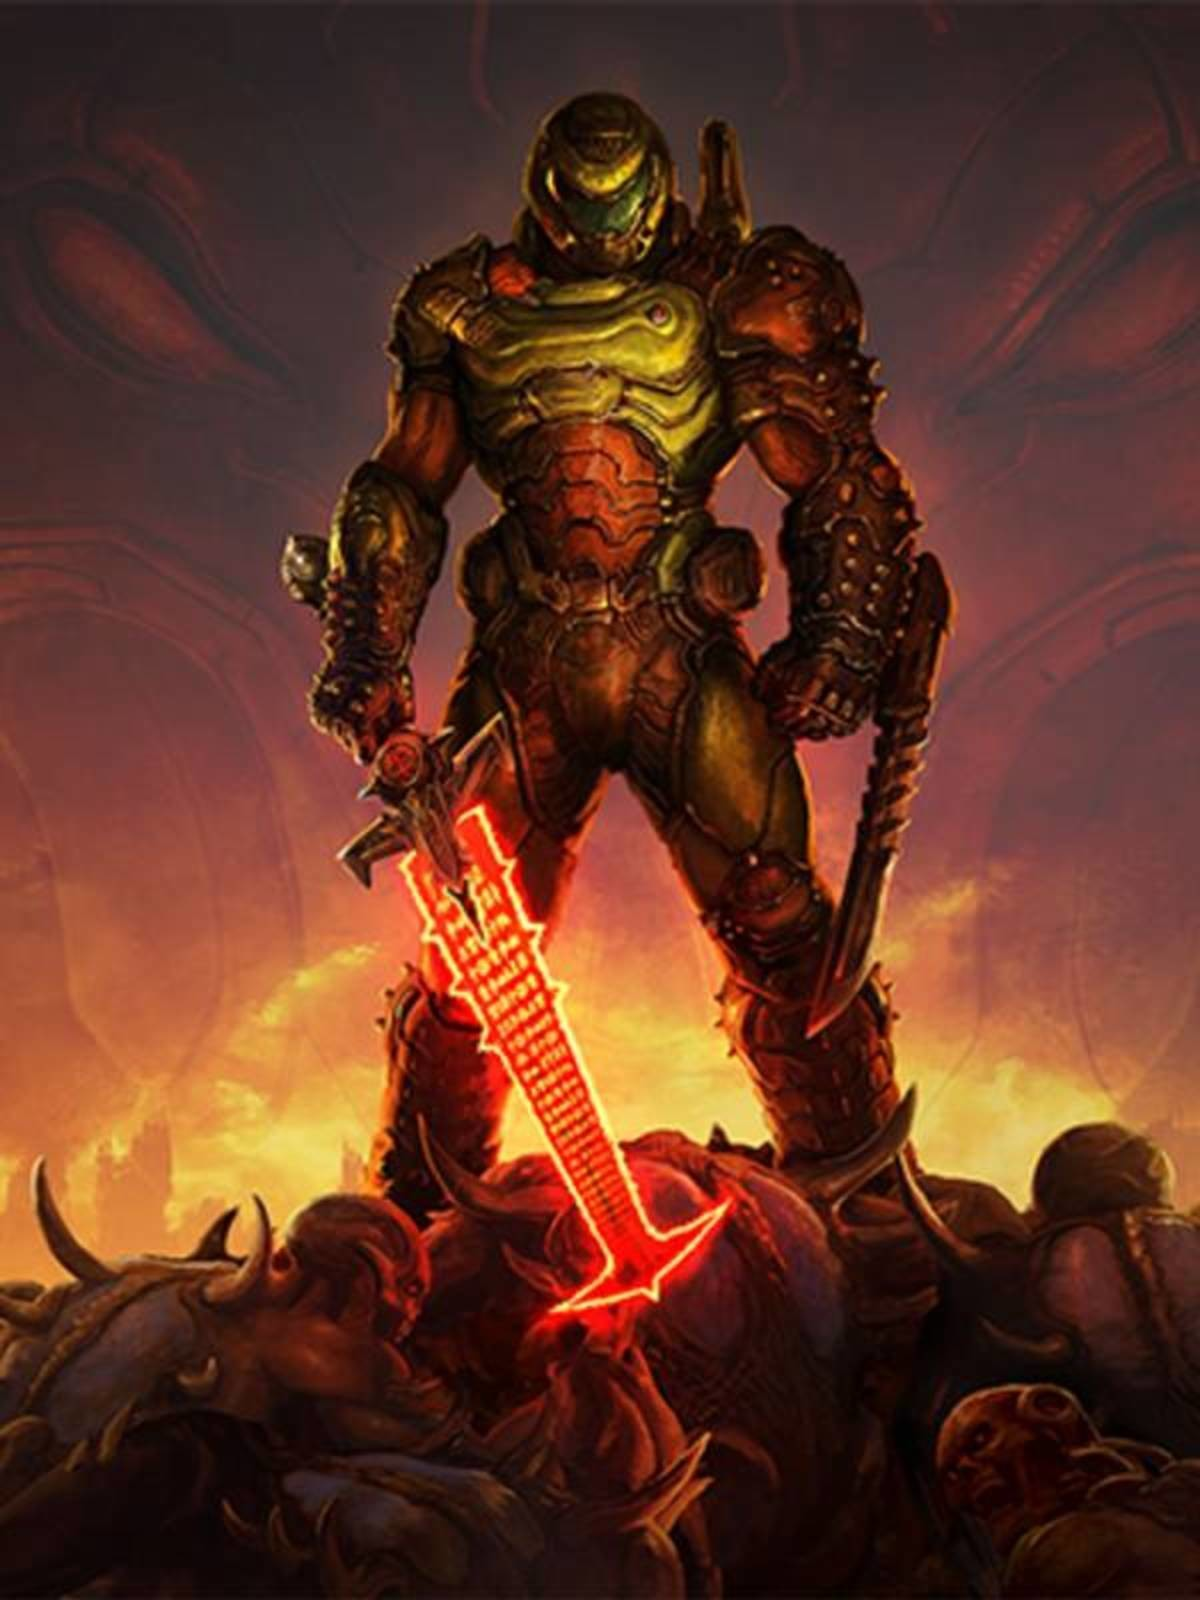 The Doom Slayer Power Guide. The Strength of the Kool-Aid Man The Wall Crawling Abilities of Spider-Man The Weapon Prowess of John Wick The Power of Castle Grey